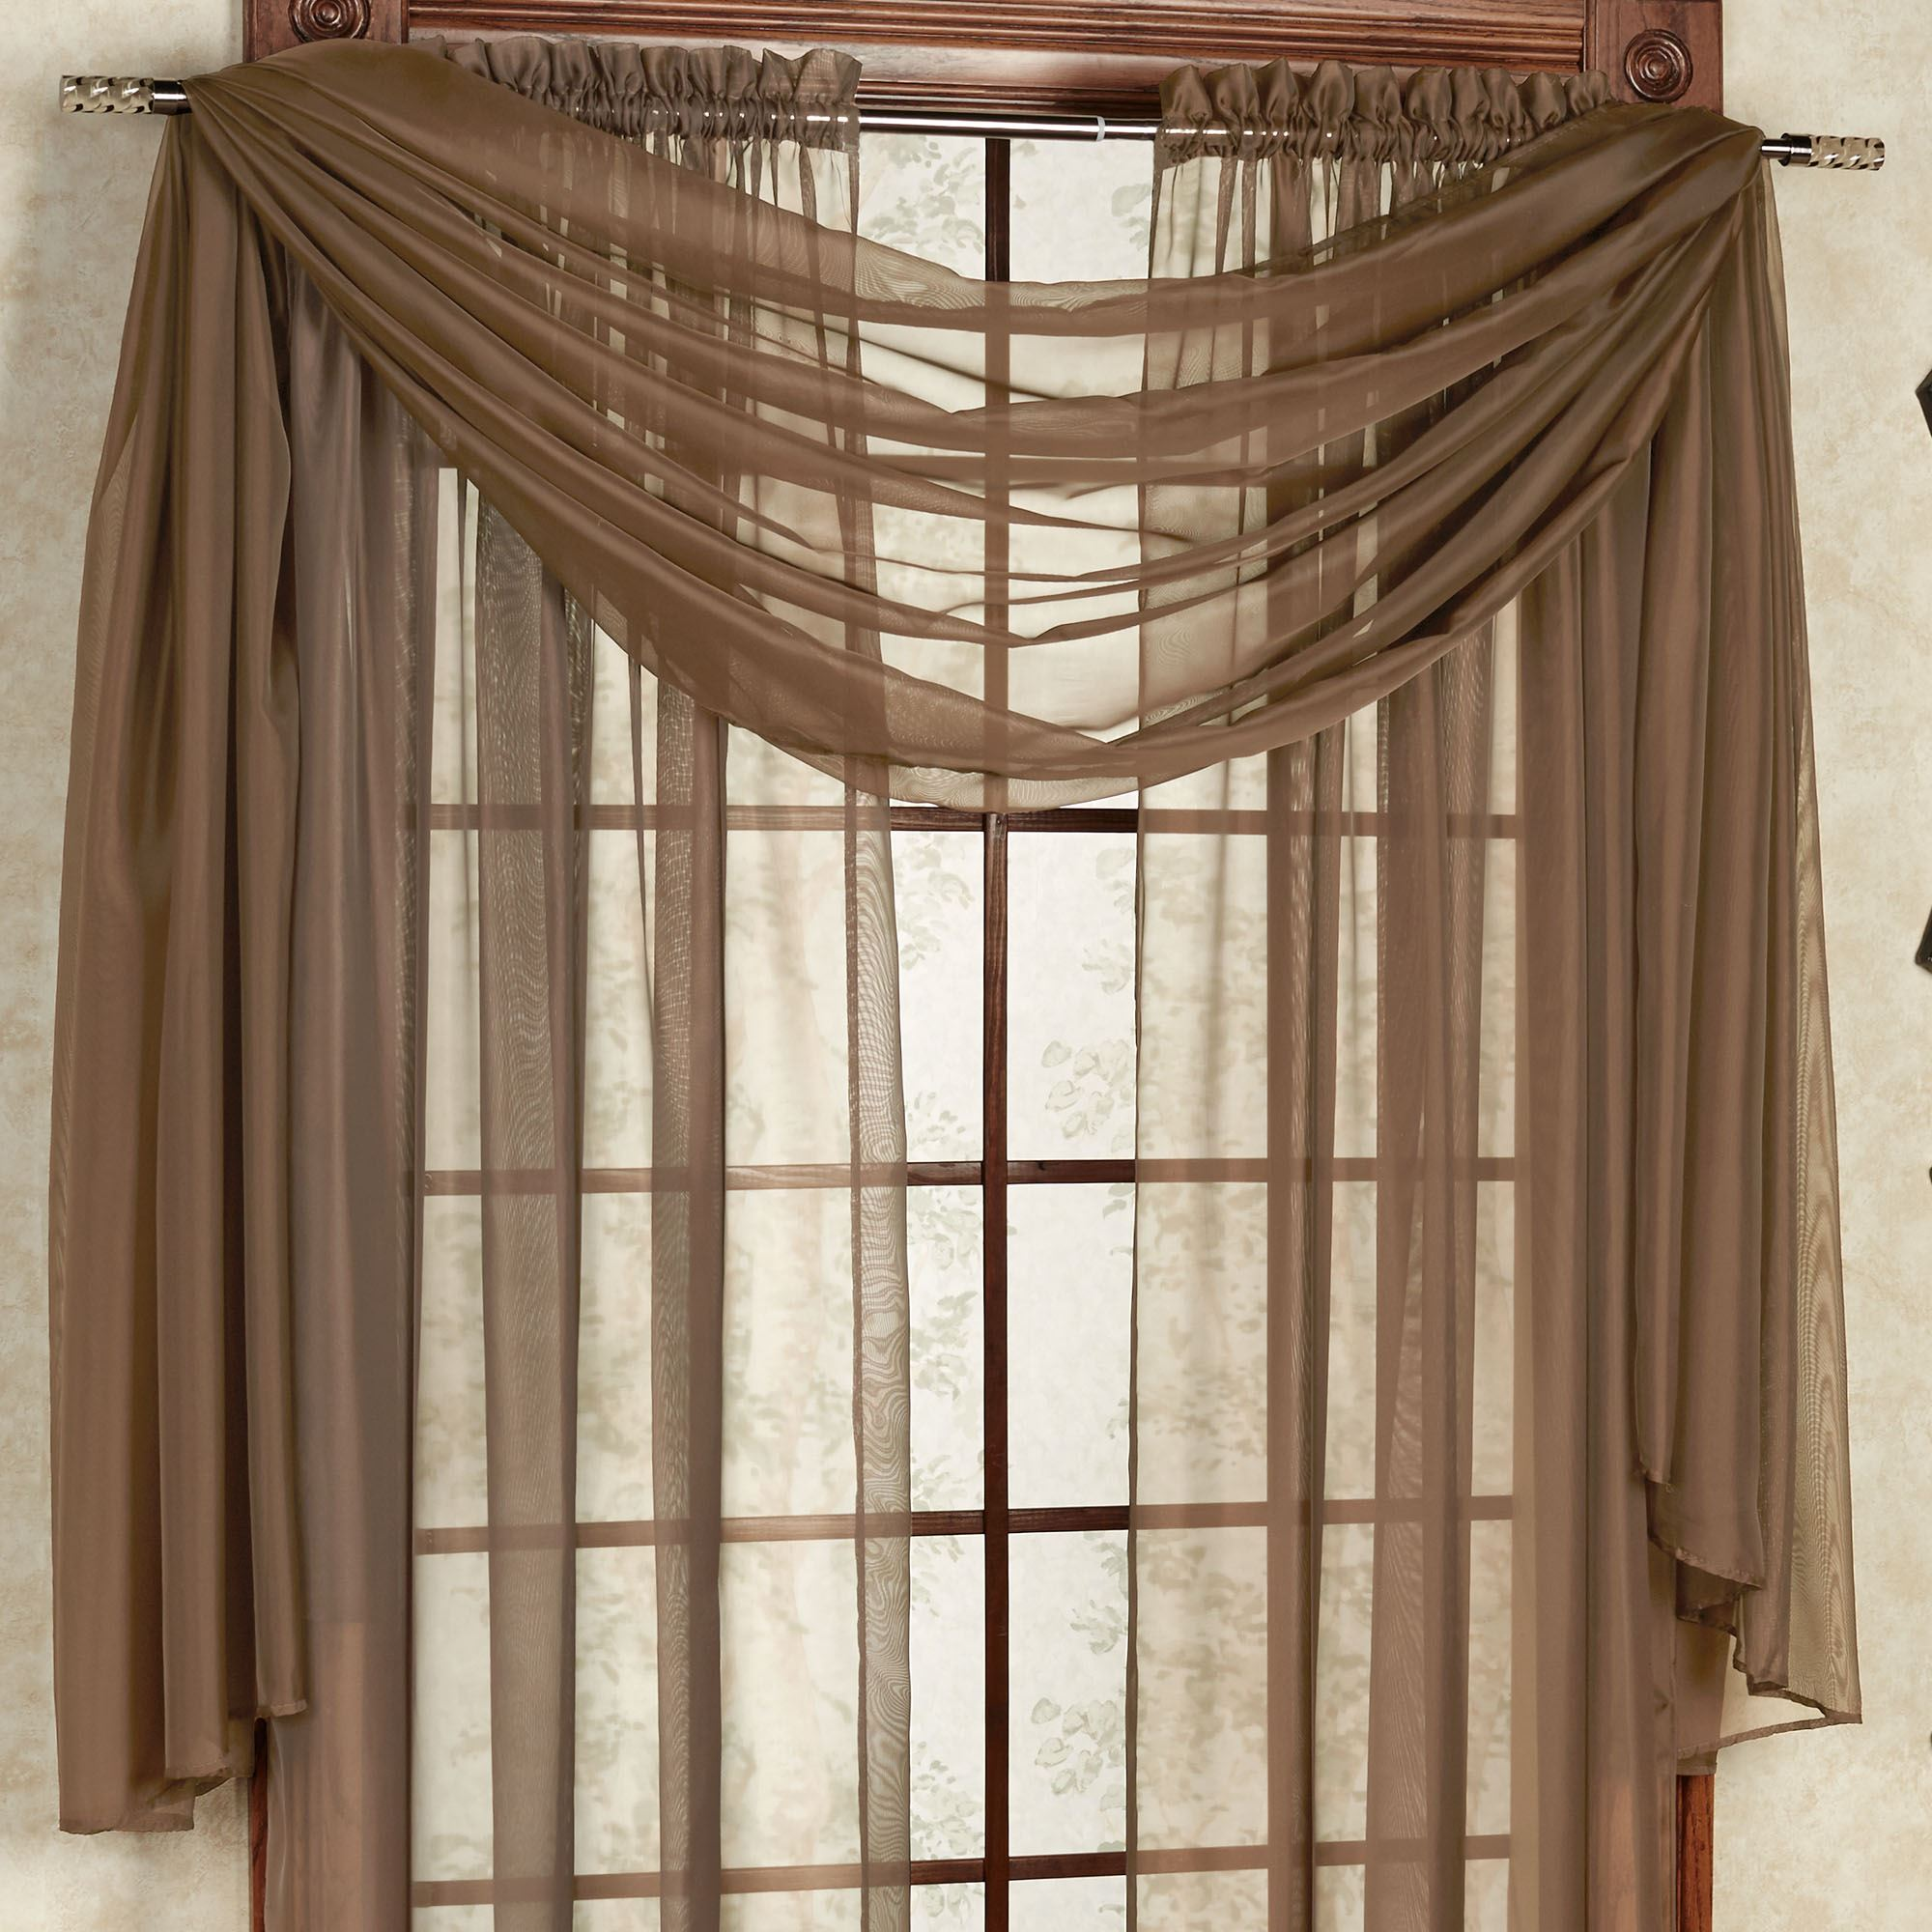 brand inch product home solid colors blush shipping curtain drapes long american overstock panels heritage cotton garden today rose free